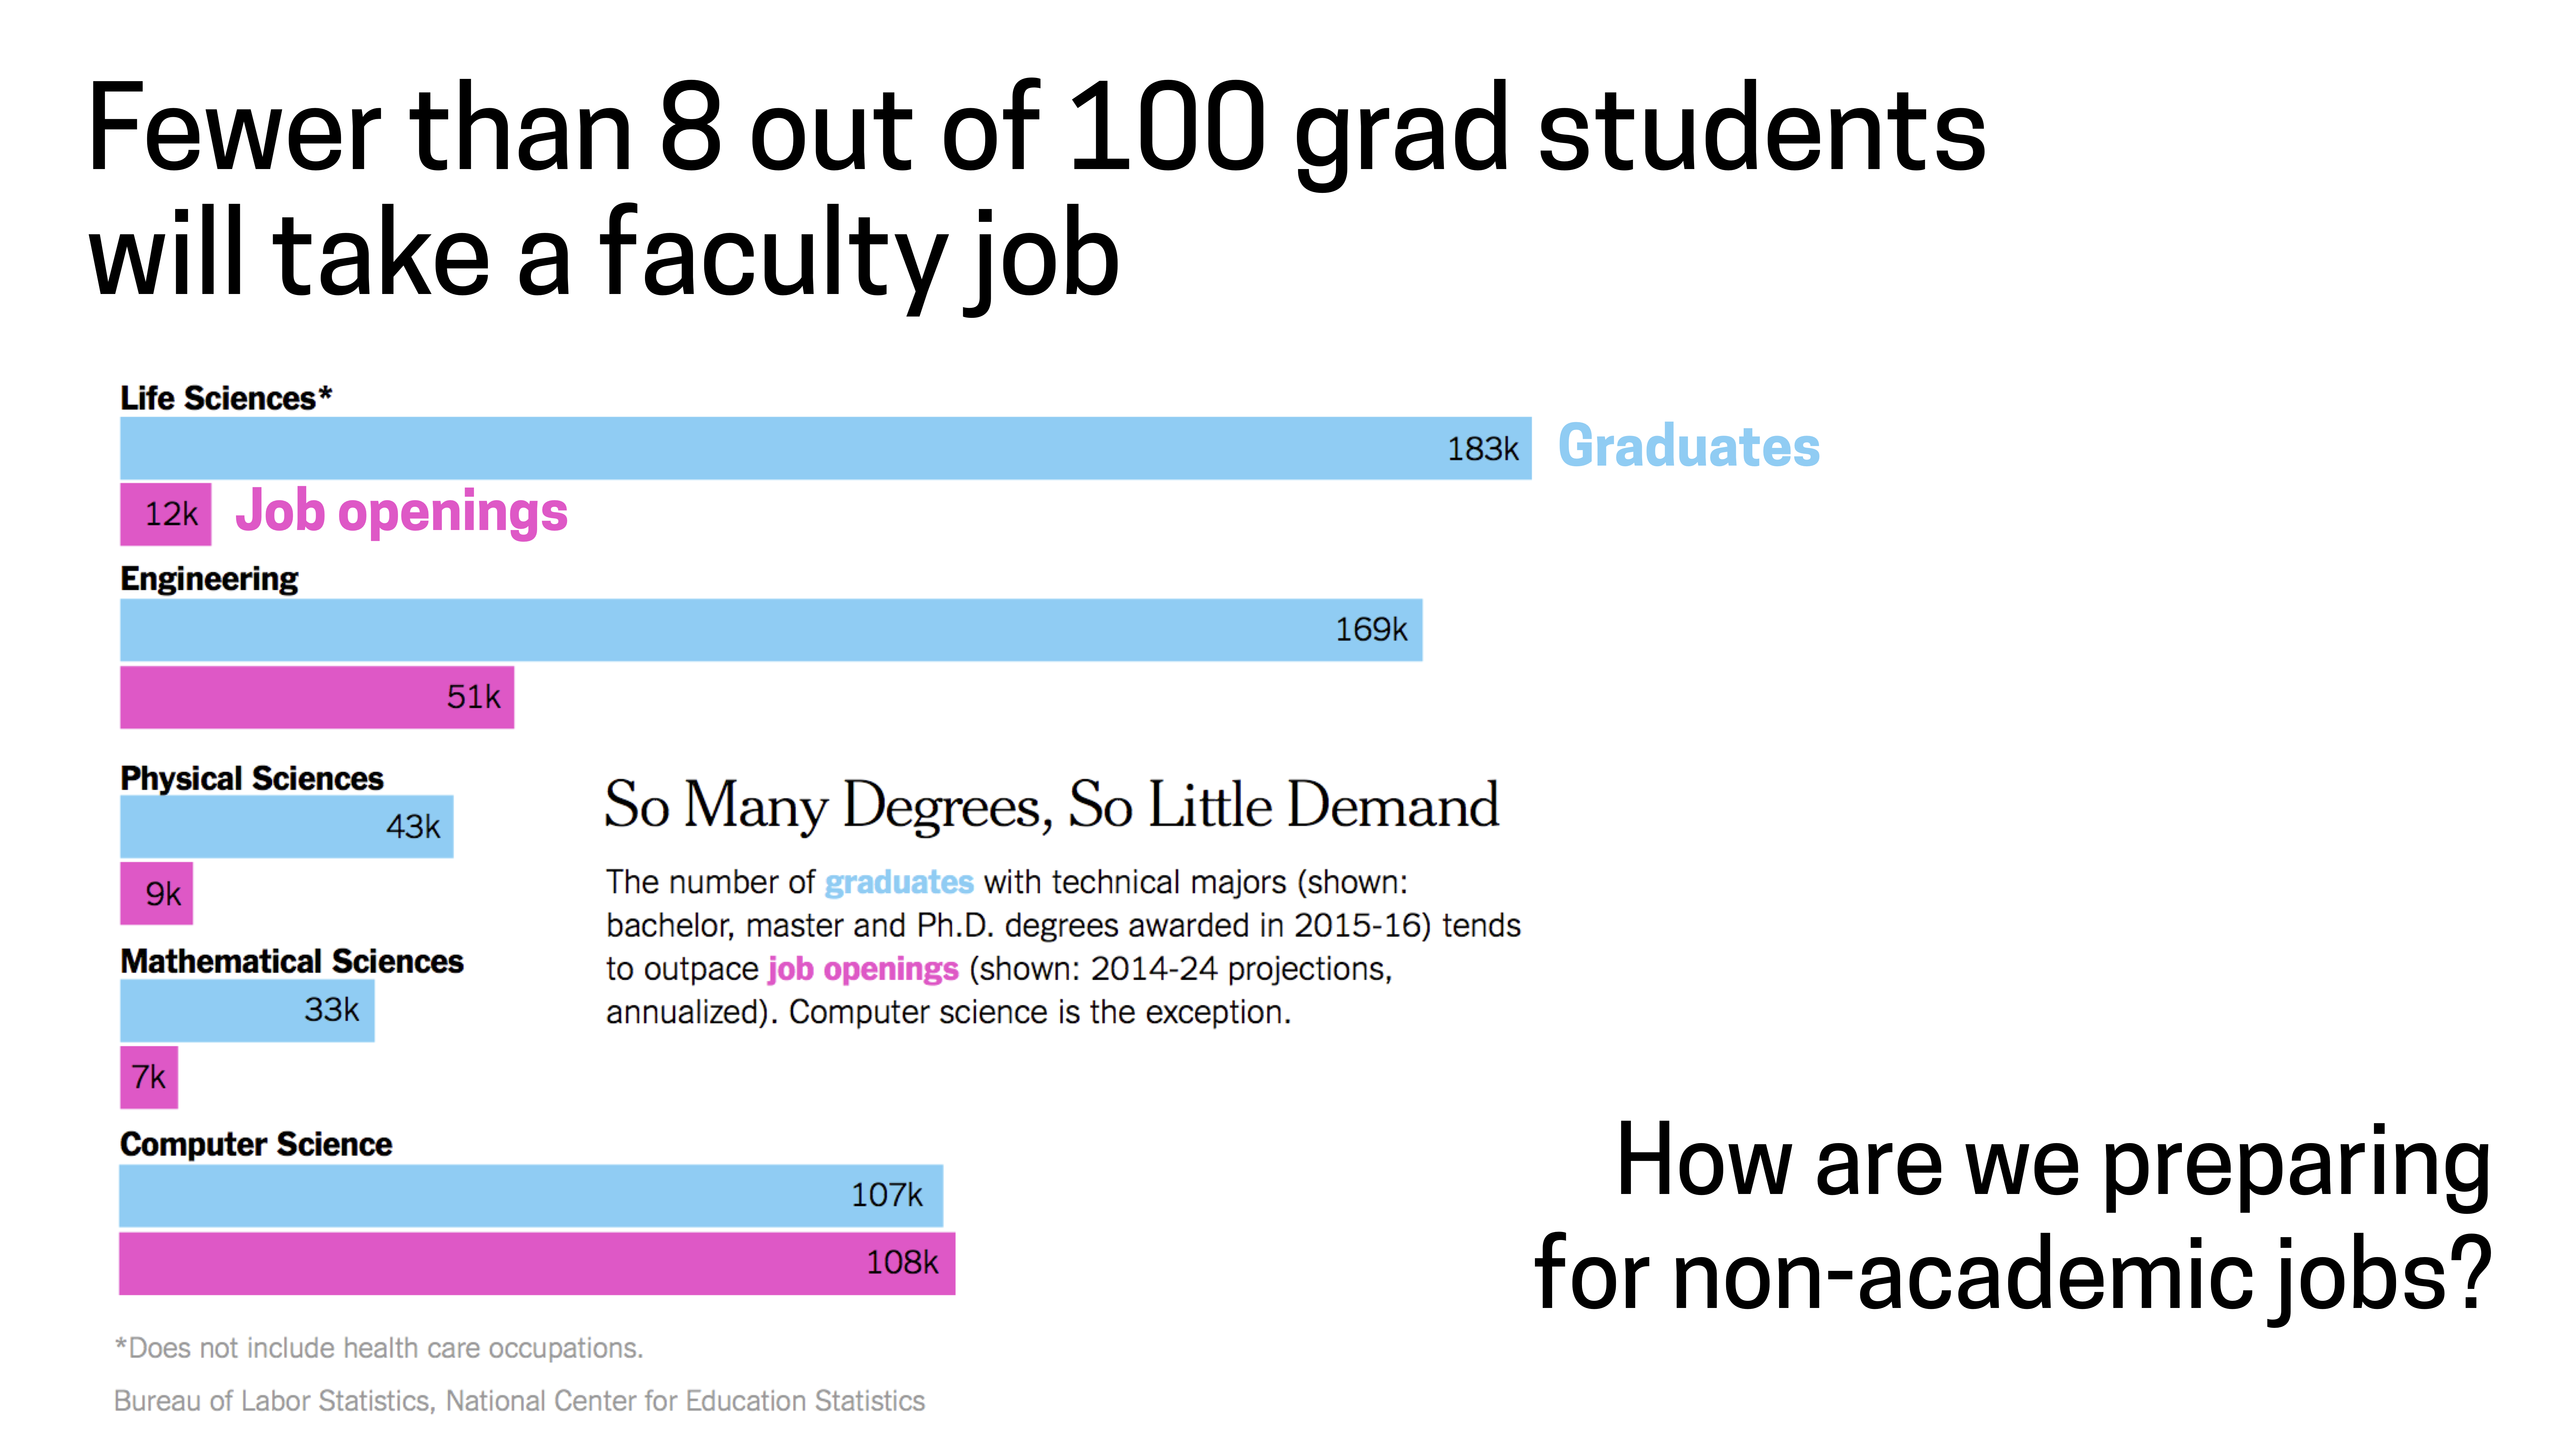 Getting jobs outside academia